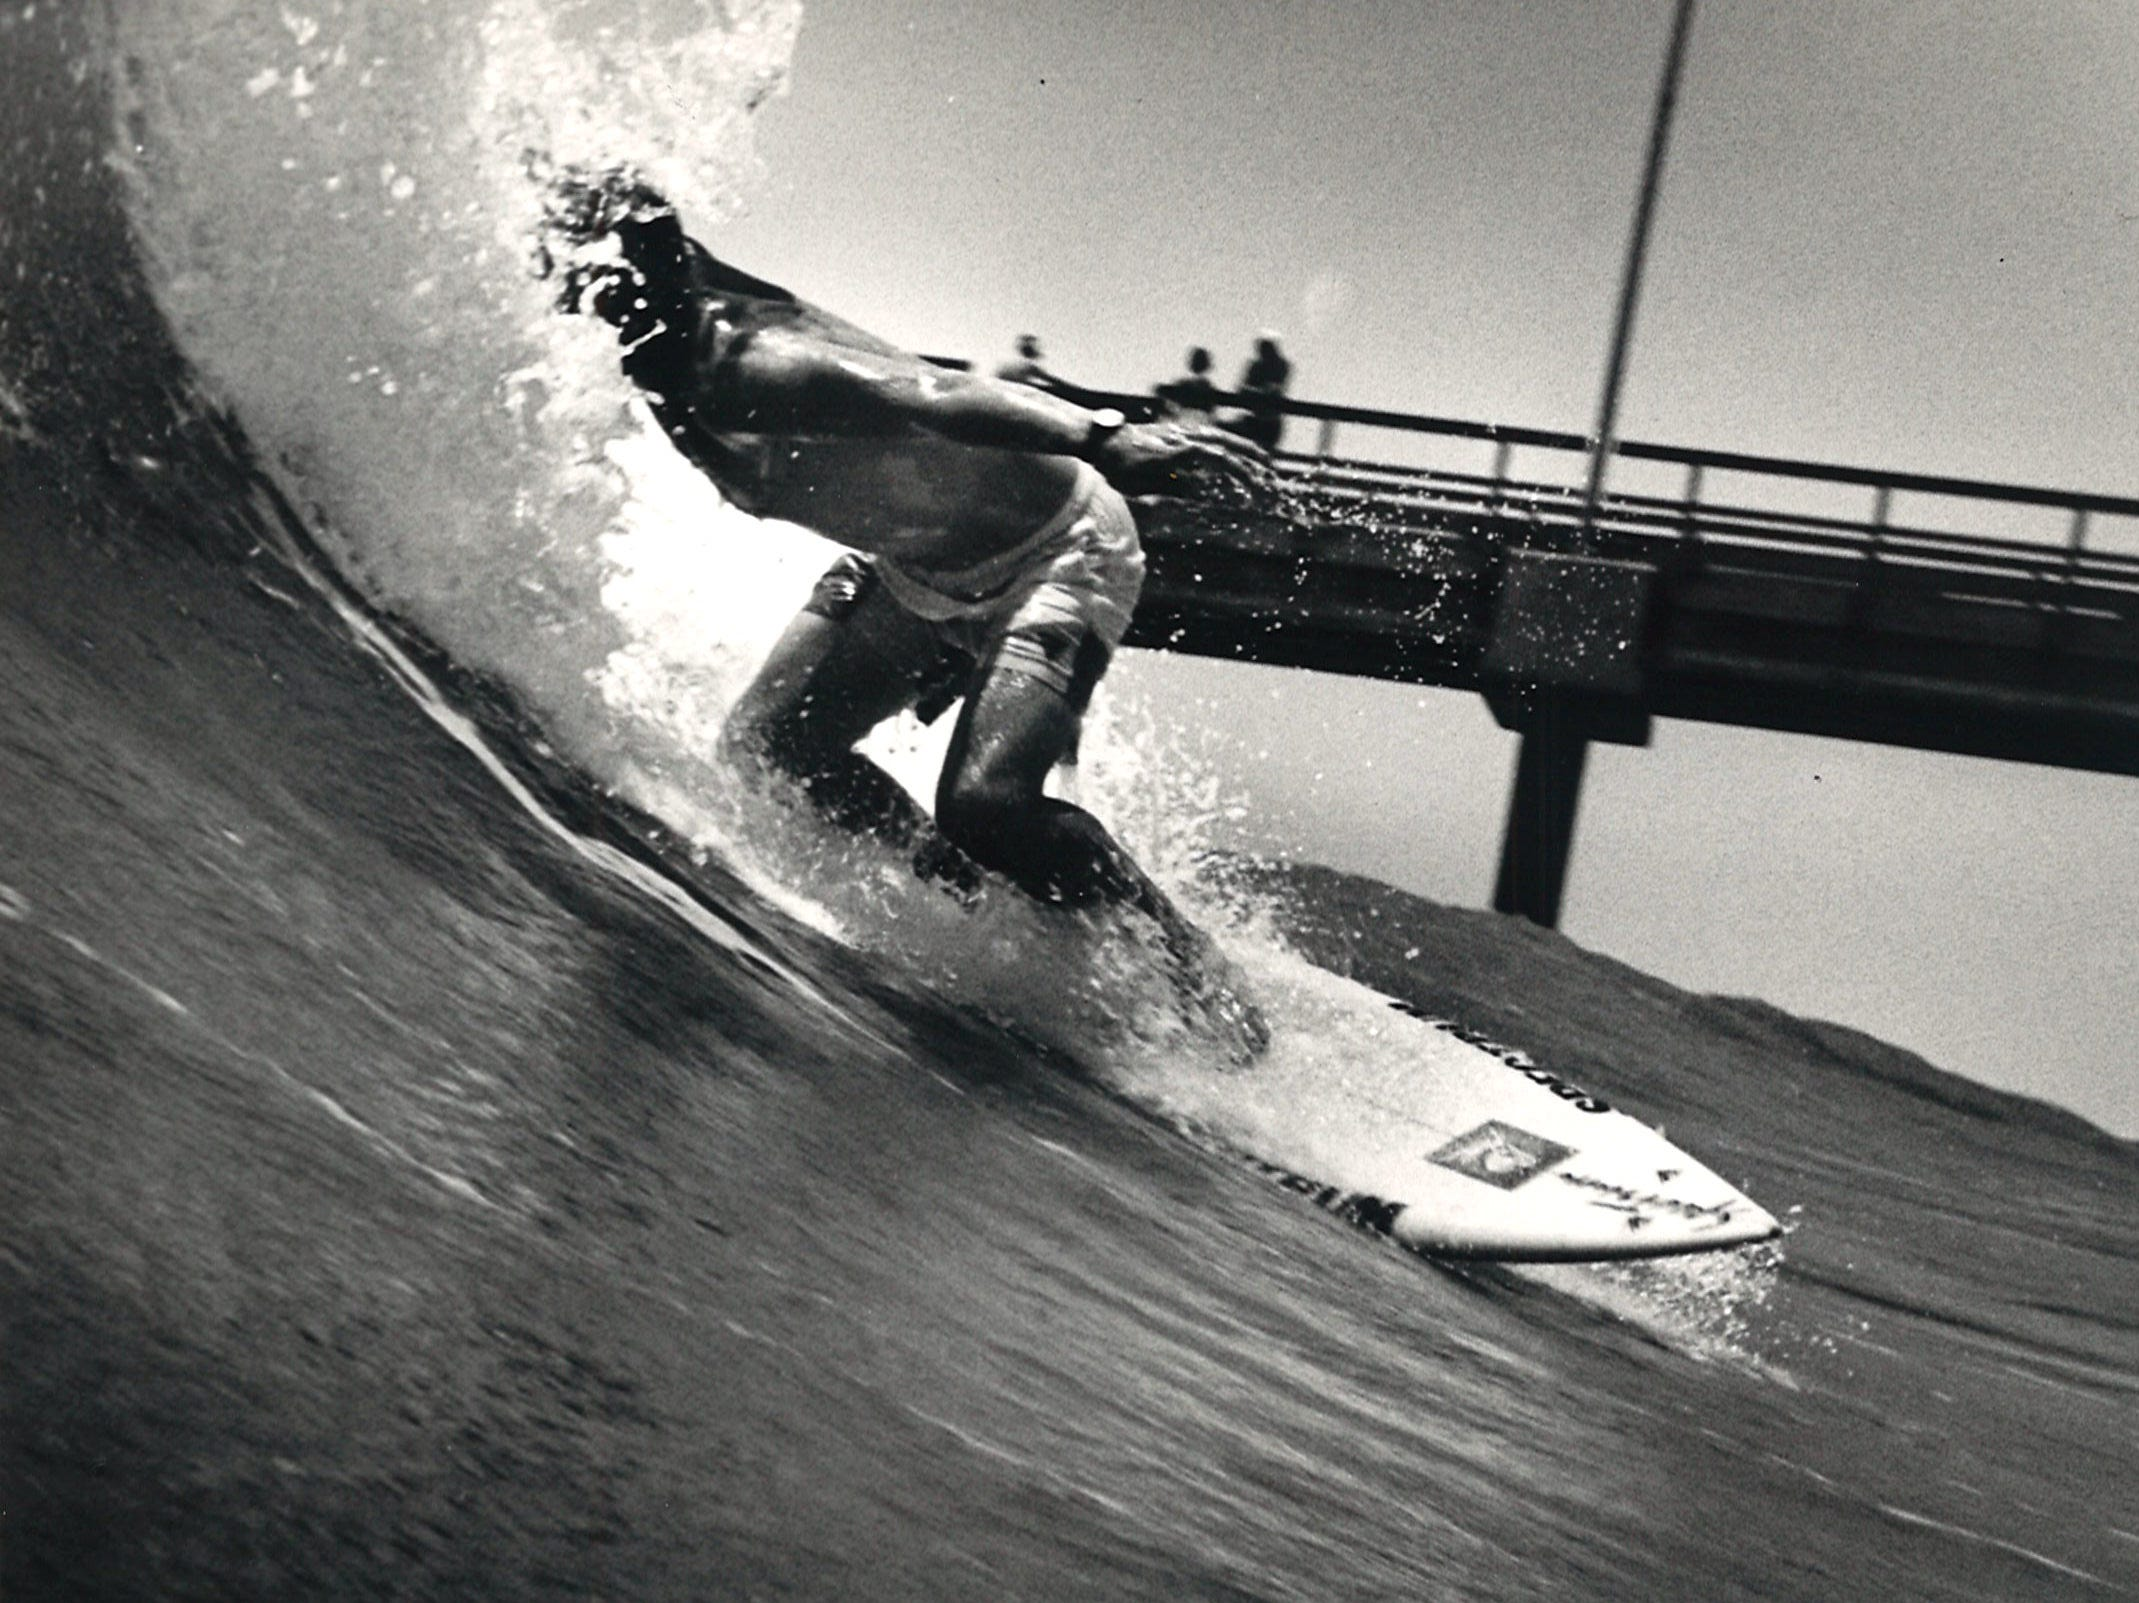 Mike Aldrich of Corpus Christi drops in on a wave next to Bob Hall Pier on May 30, 1987.